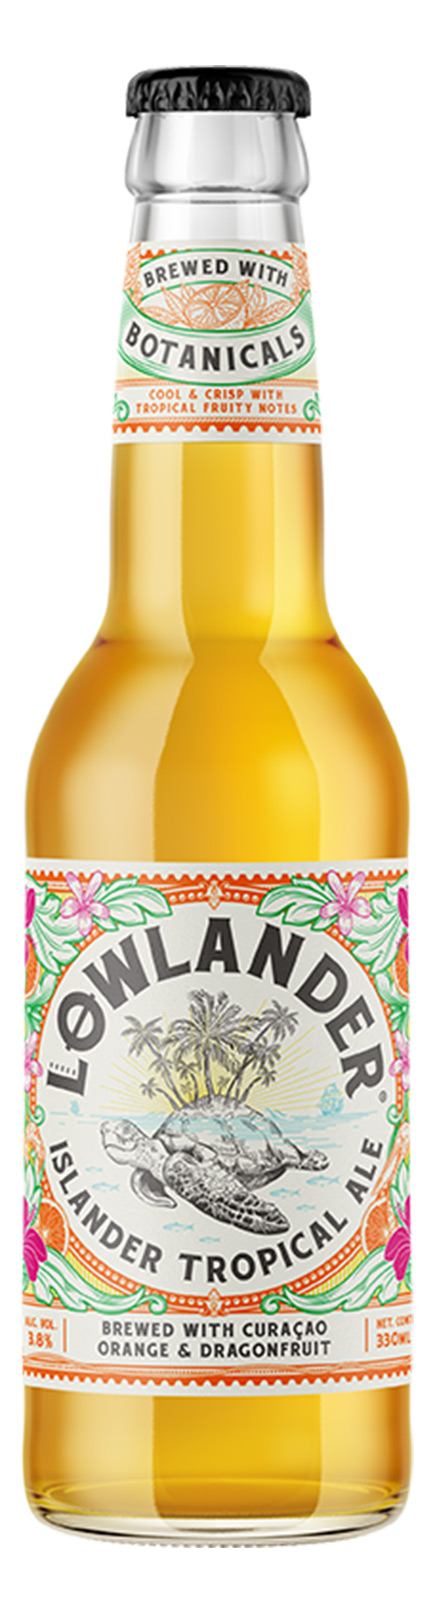 Lowlander Islander Tropical Ale_large